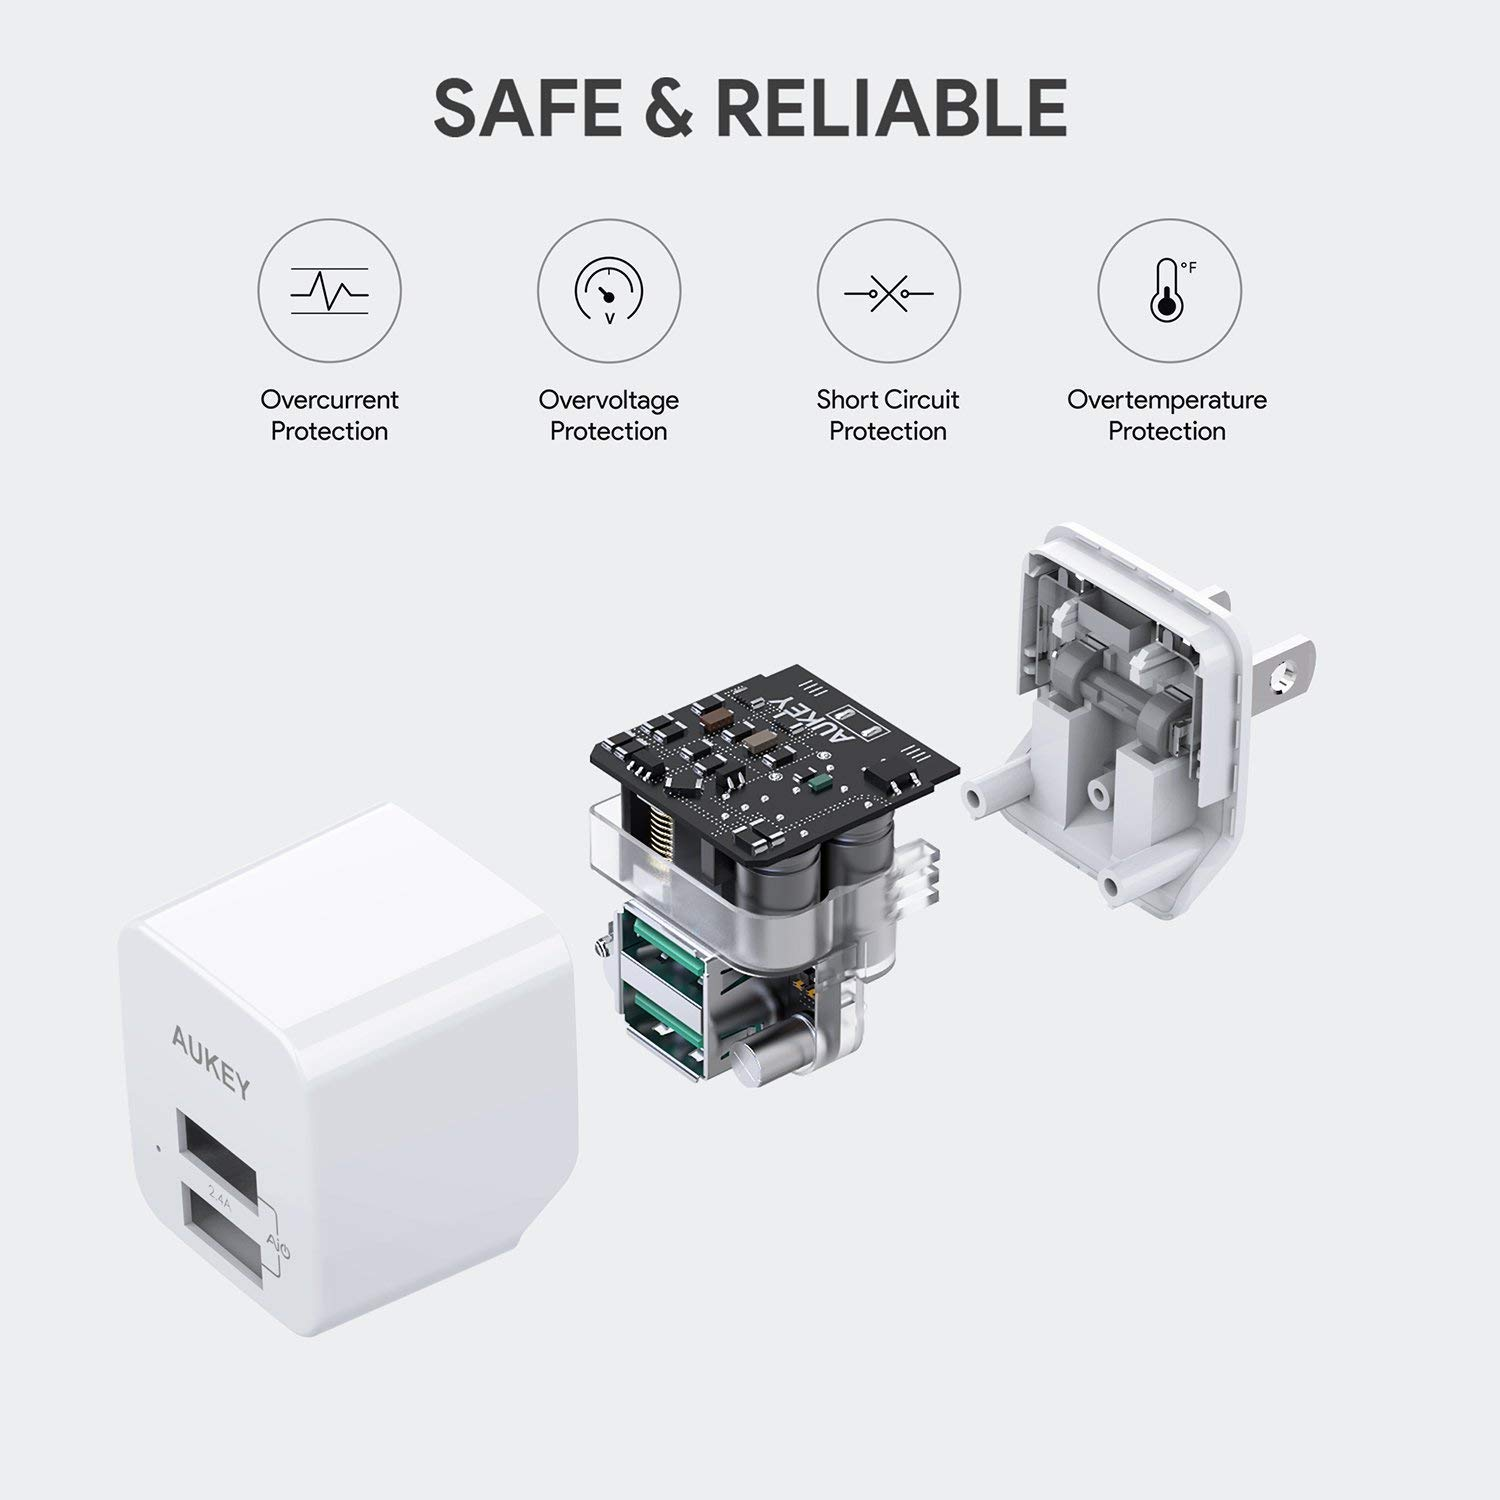 AUKEY USB Wall Charger, Ultra Compact Dual Port 2.4A Output & Foldable Plug, Compatible iPhone Xs/XS Max/XR, iPad Pro/Air 2 / Mini 4, Samsung, and More by AUKEY (Image #6)